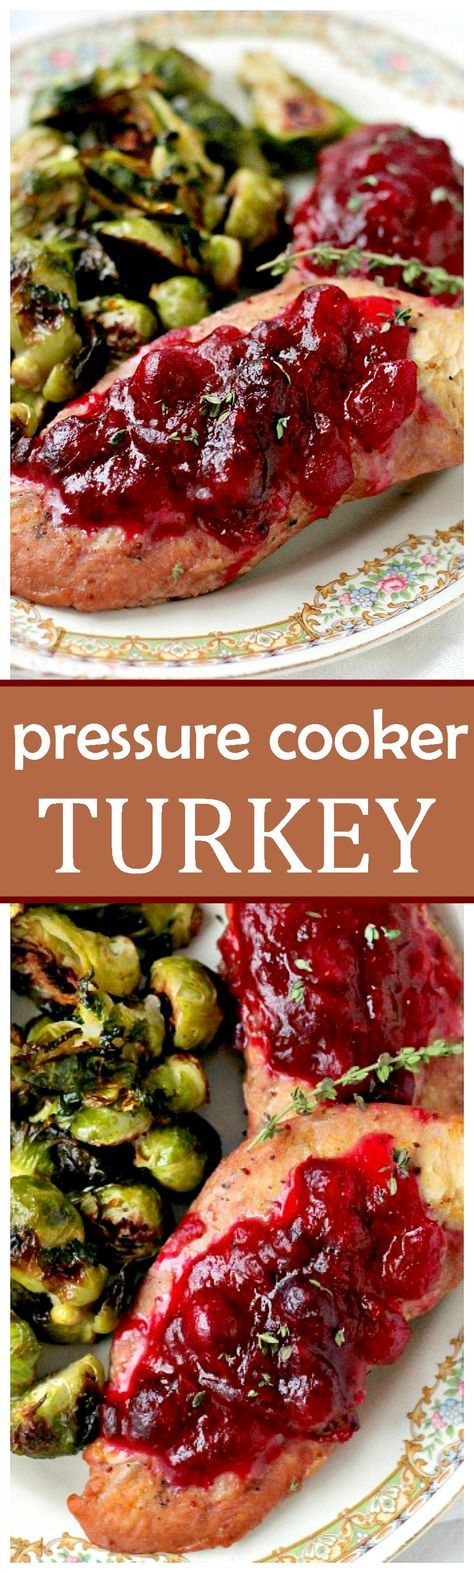 Cranberry Turkey Breast – Tender and juicy turkey breasts cooked in a pressure cooker with a sweet and delicious cranberry sauce.